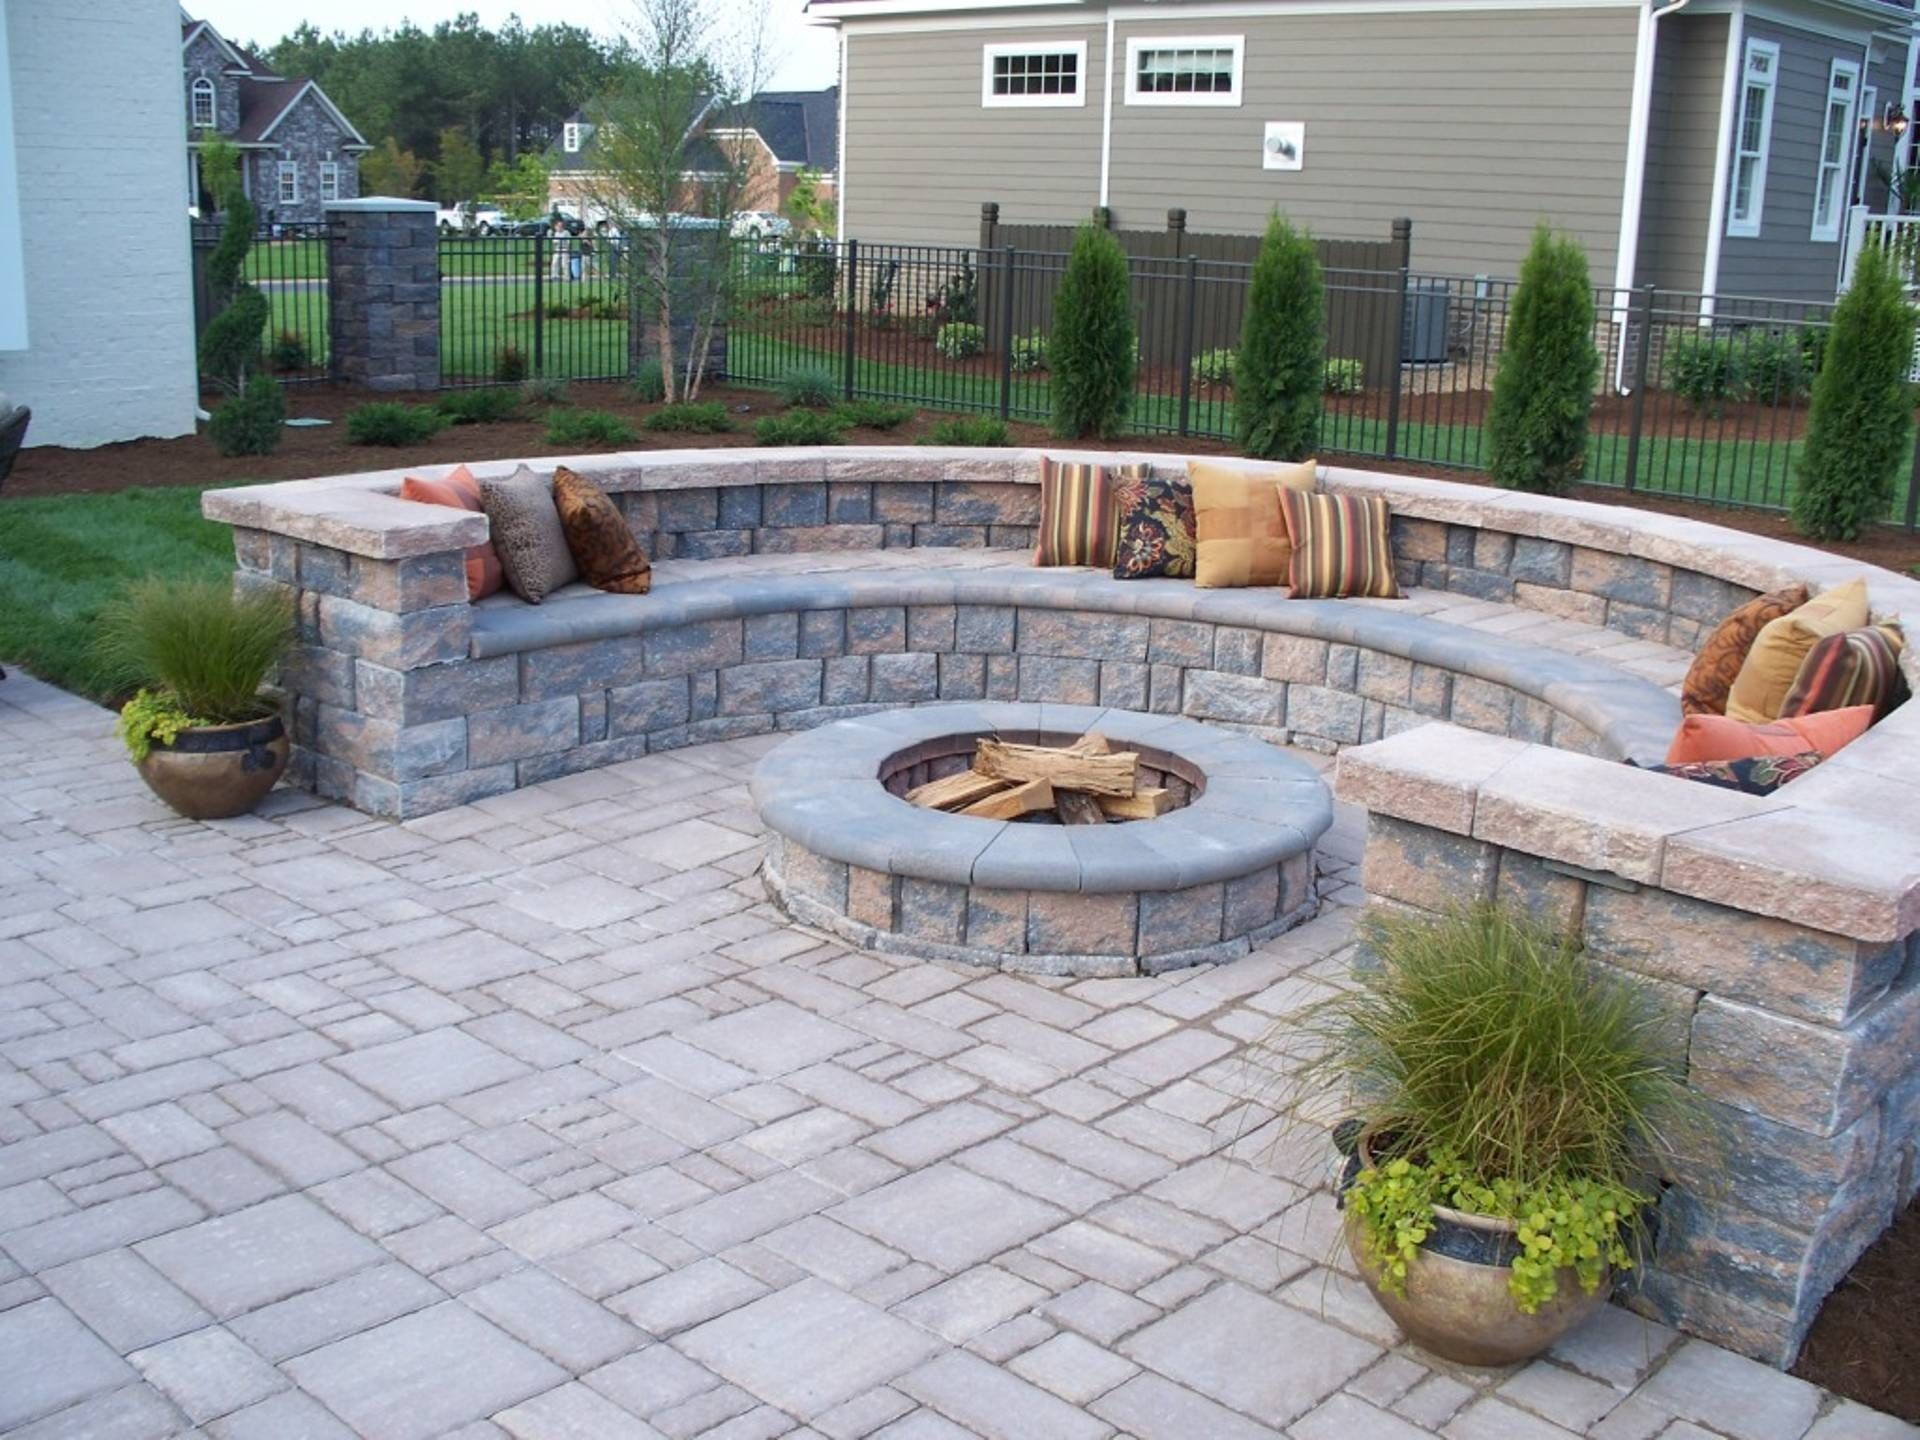 Backyard Pavers Ideas Paver Turismoestrategicoco intended for 11 Awesome Designs of How to Build Paver Ideas For Backyards